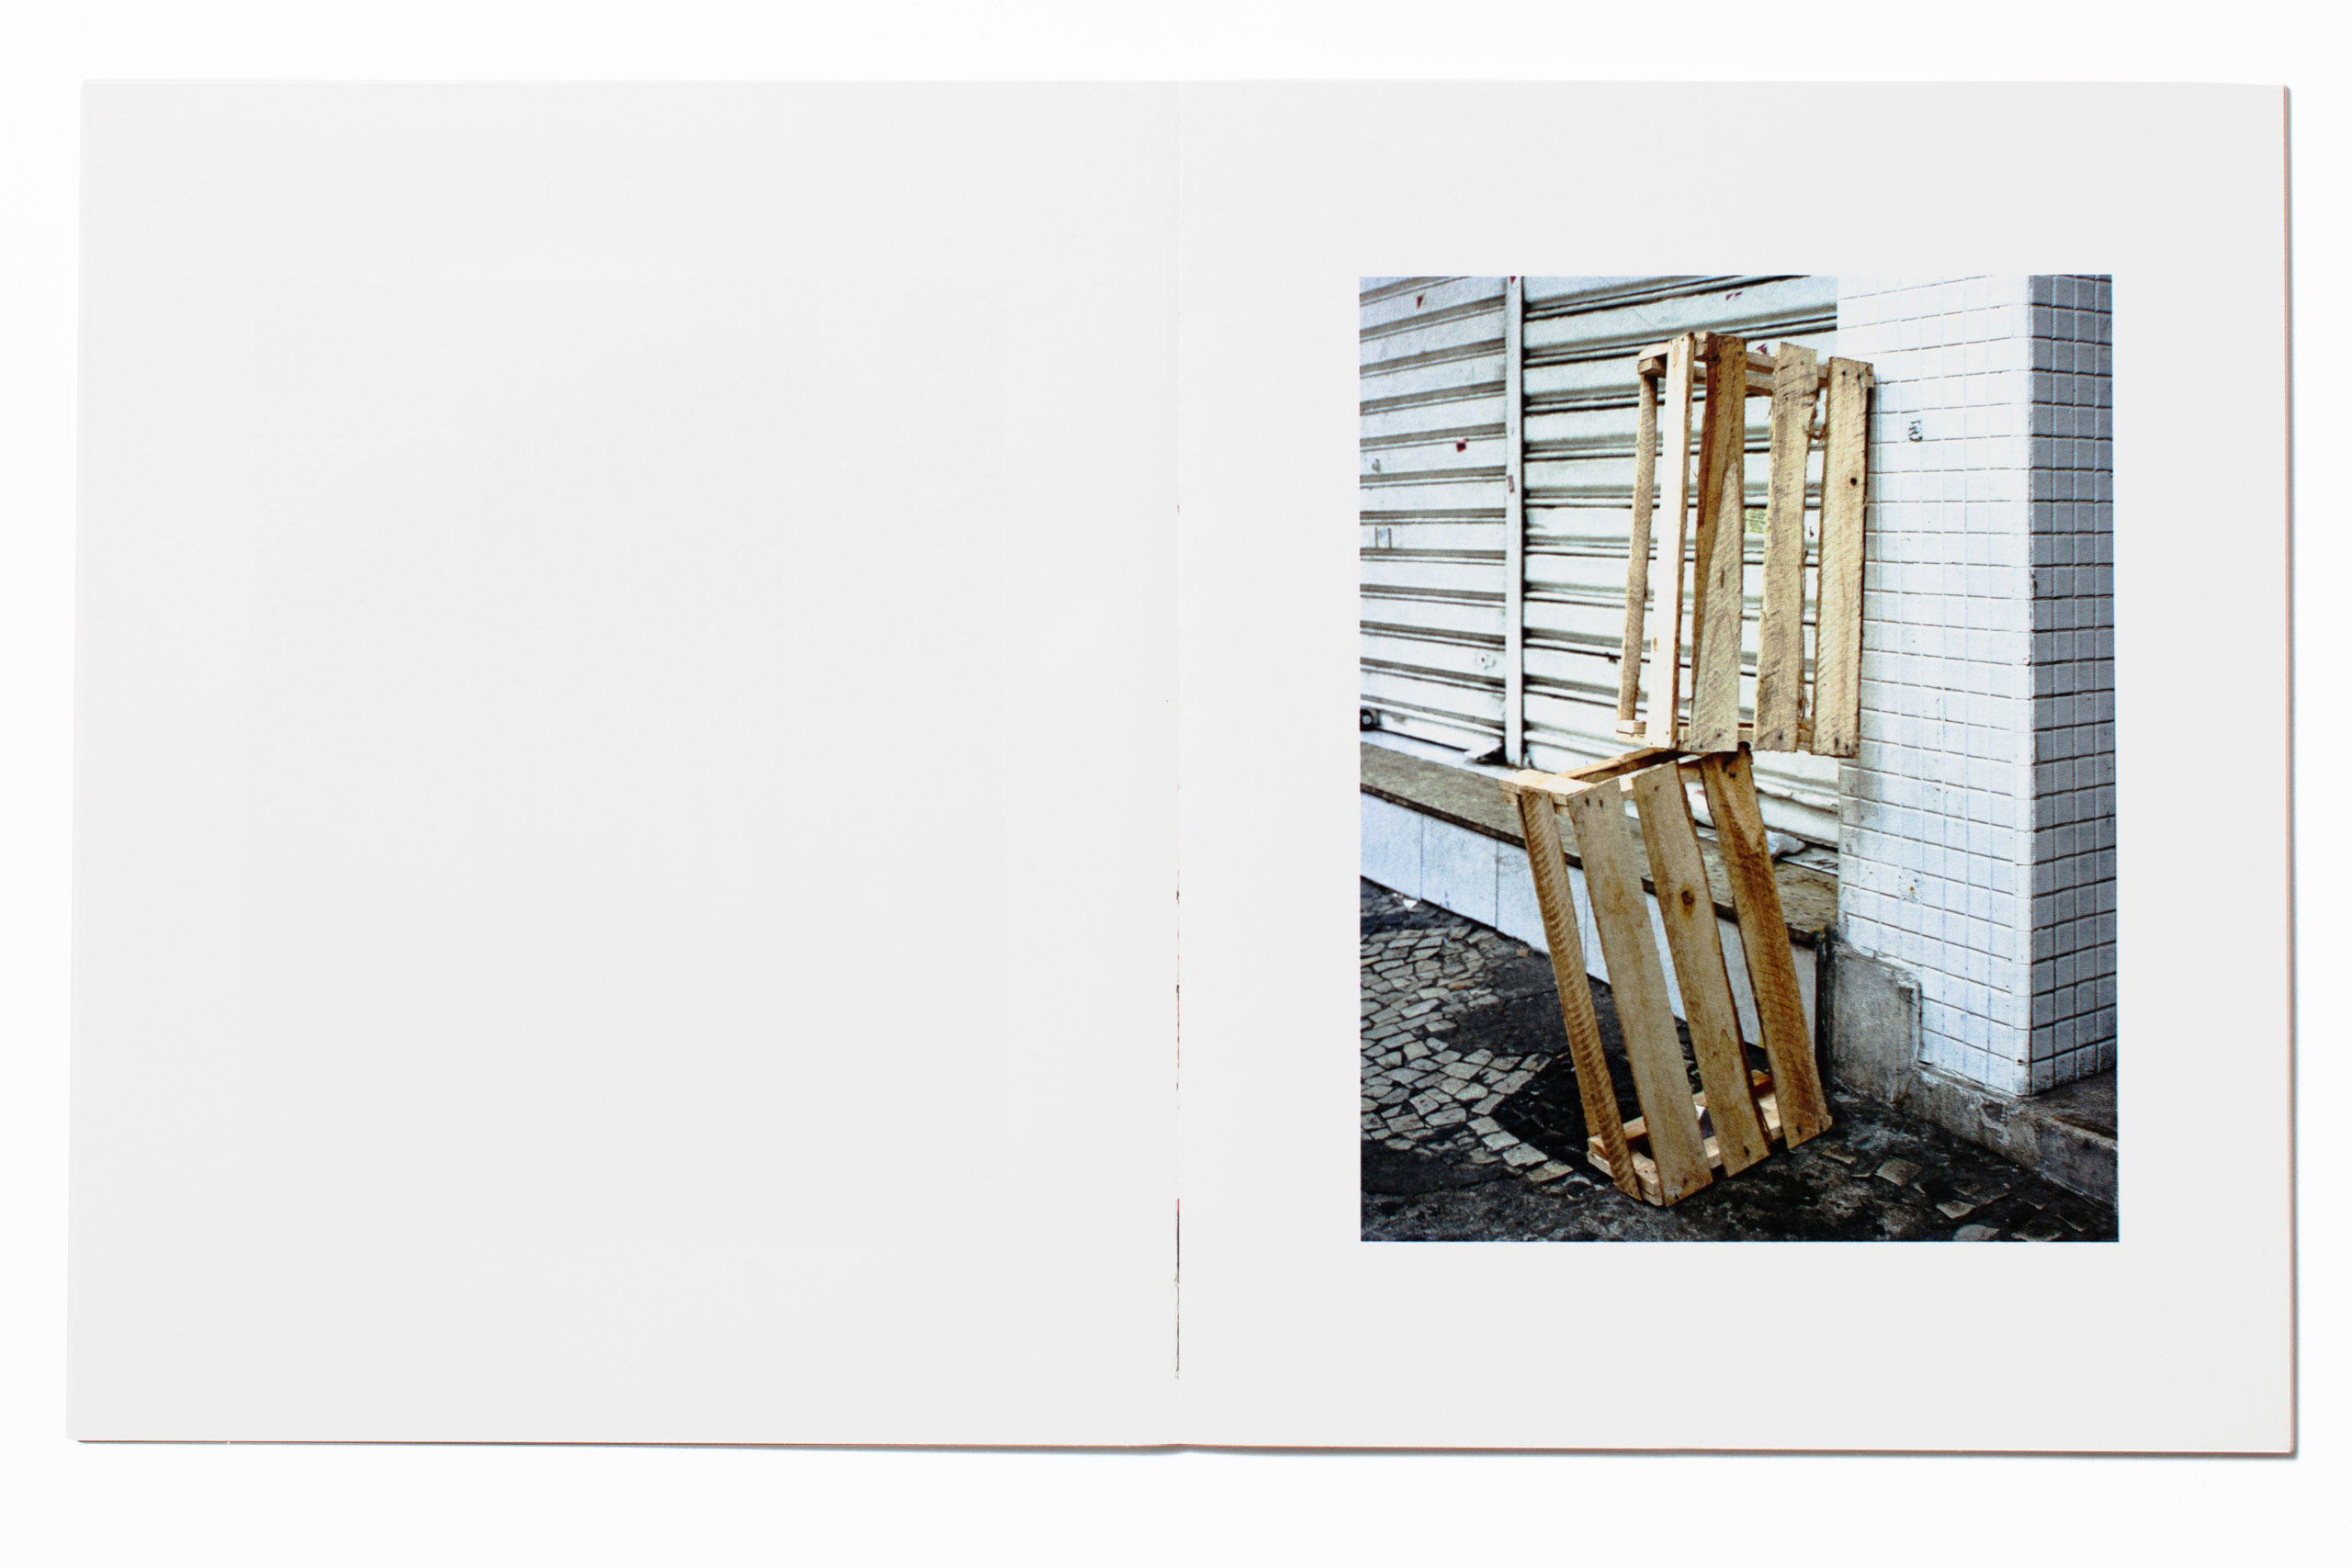 """""""This has been a good year for books from Latin America, and this small and charming  book on Sao Paulo works very well. A combination of wider views depicting the urban anarchy of the city, with some deceptively  simple and                                    surreal street details  pull together to make a fascinating book.""""                                                                                                         -Martin Parr, photographer at Magnum Photos."""